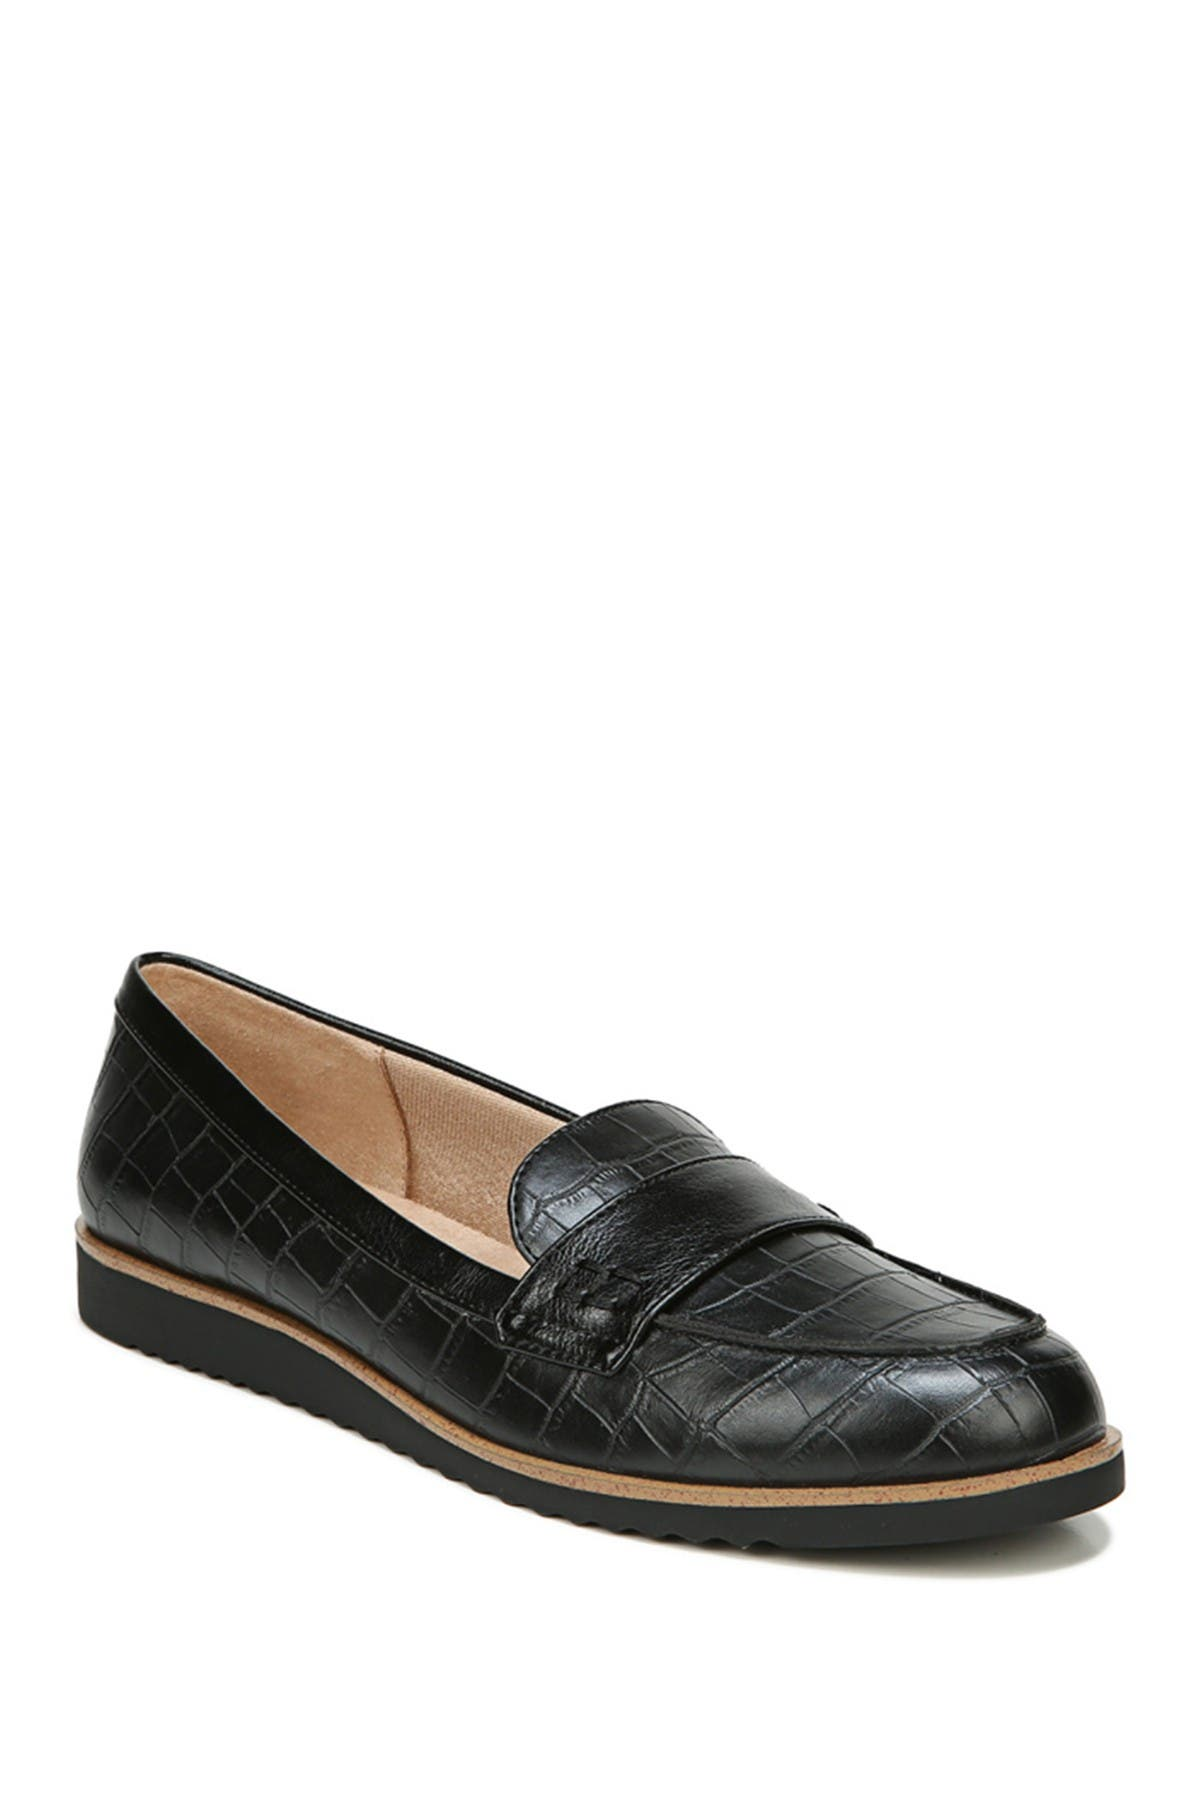 Image of LifeStride Zee Croc Embossed Leather Loafer - Wide Width Available